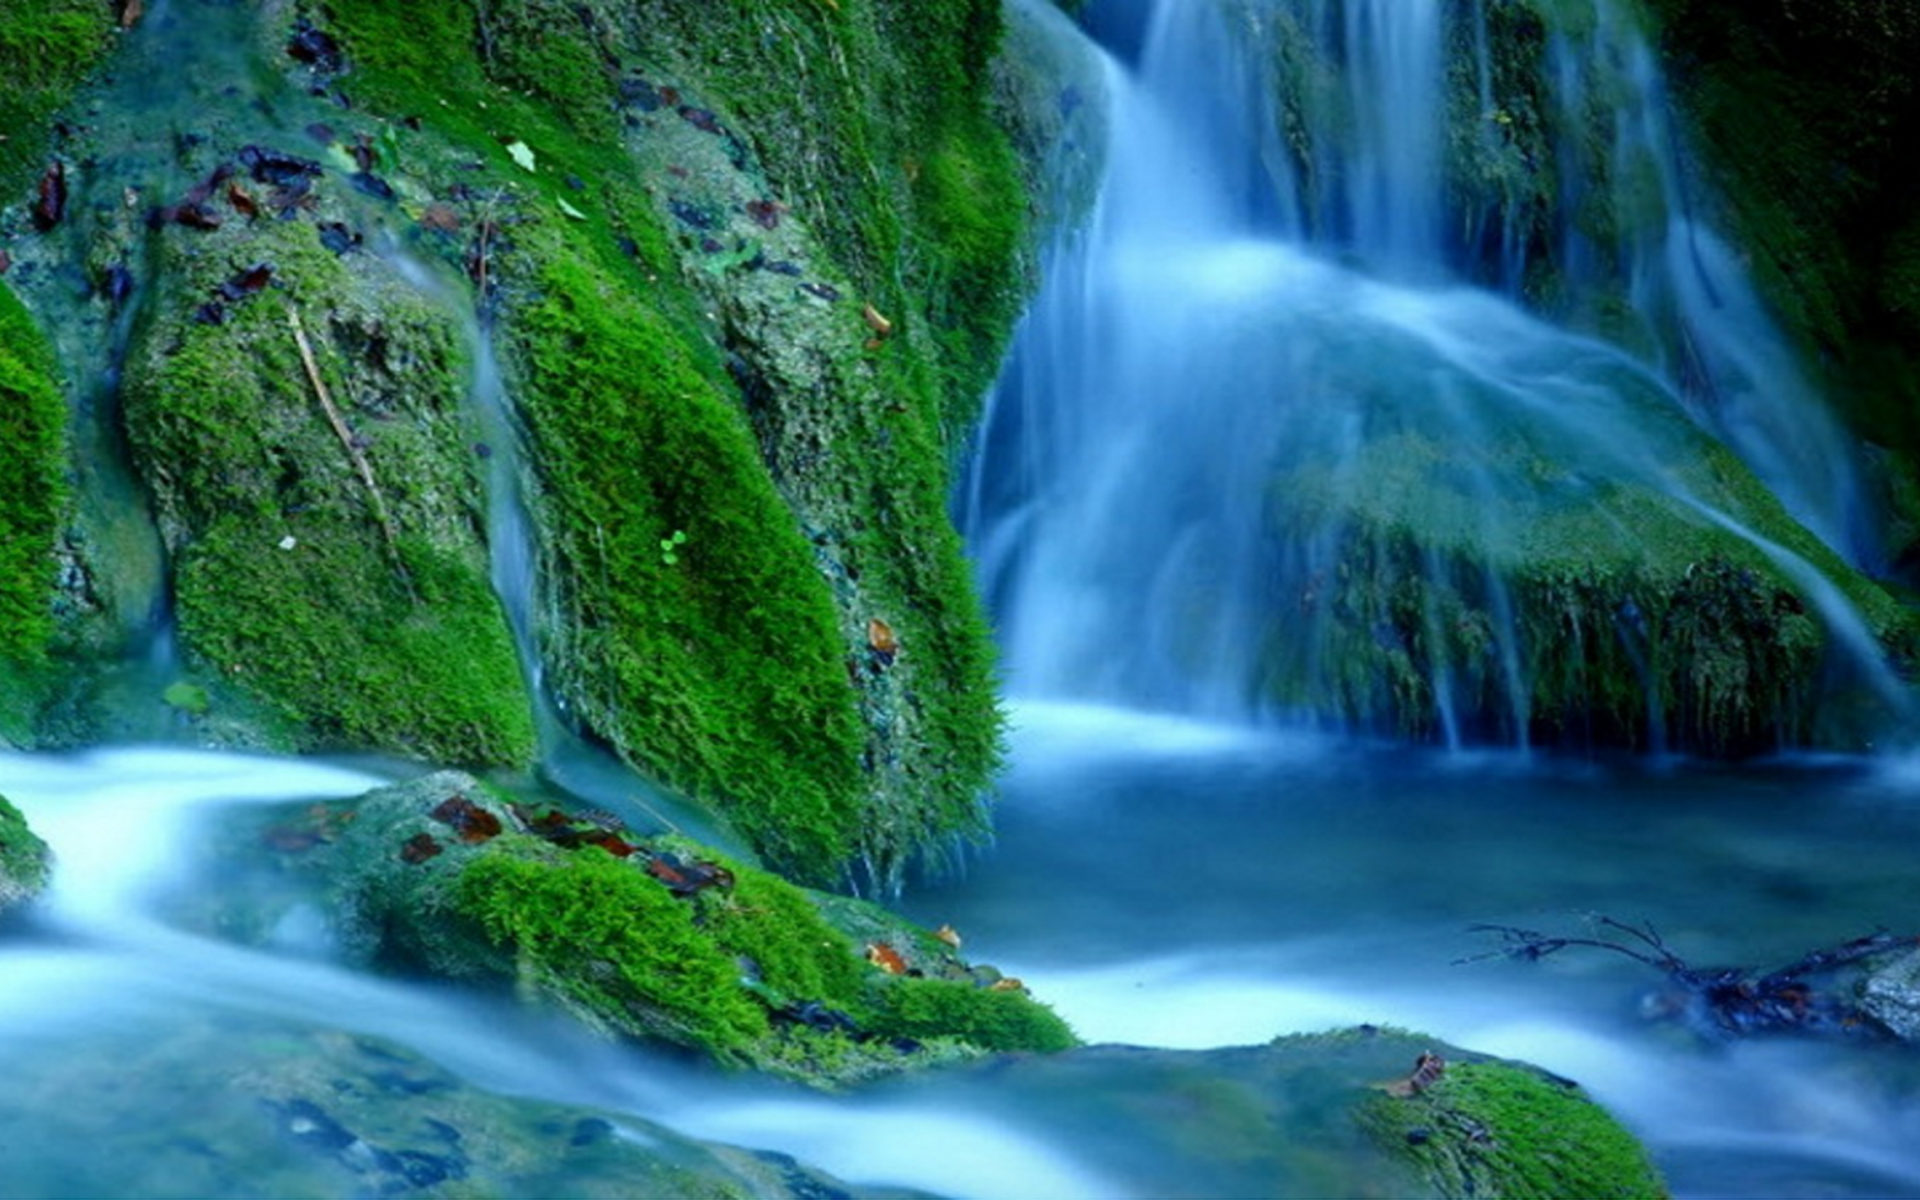 Free Christmas Wallpaper Iphone 4 Plitvice Lakes National Park Croatia Waterfall